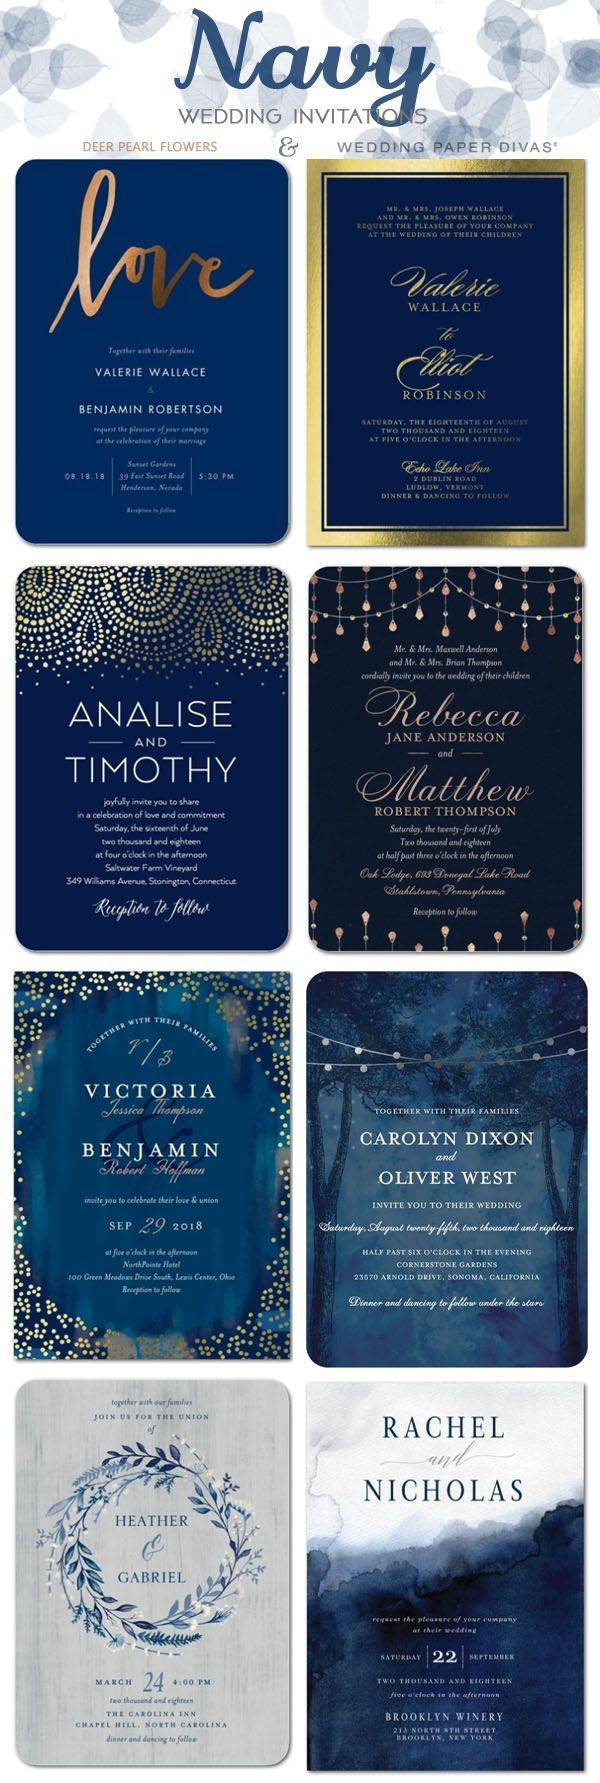 make your own wedding invitations online free%0A Now trending  navy wedding invitations from Elli com   Wedding Ideas    Pinterest   Navy weddings  Navy and Weddings